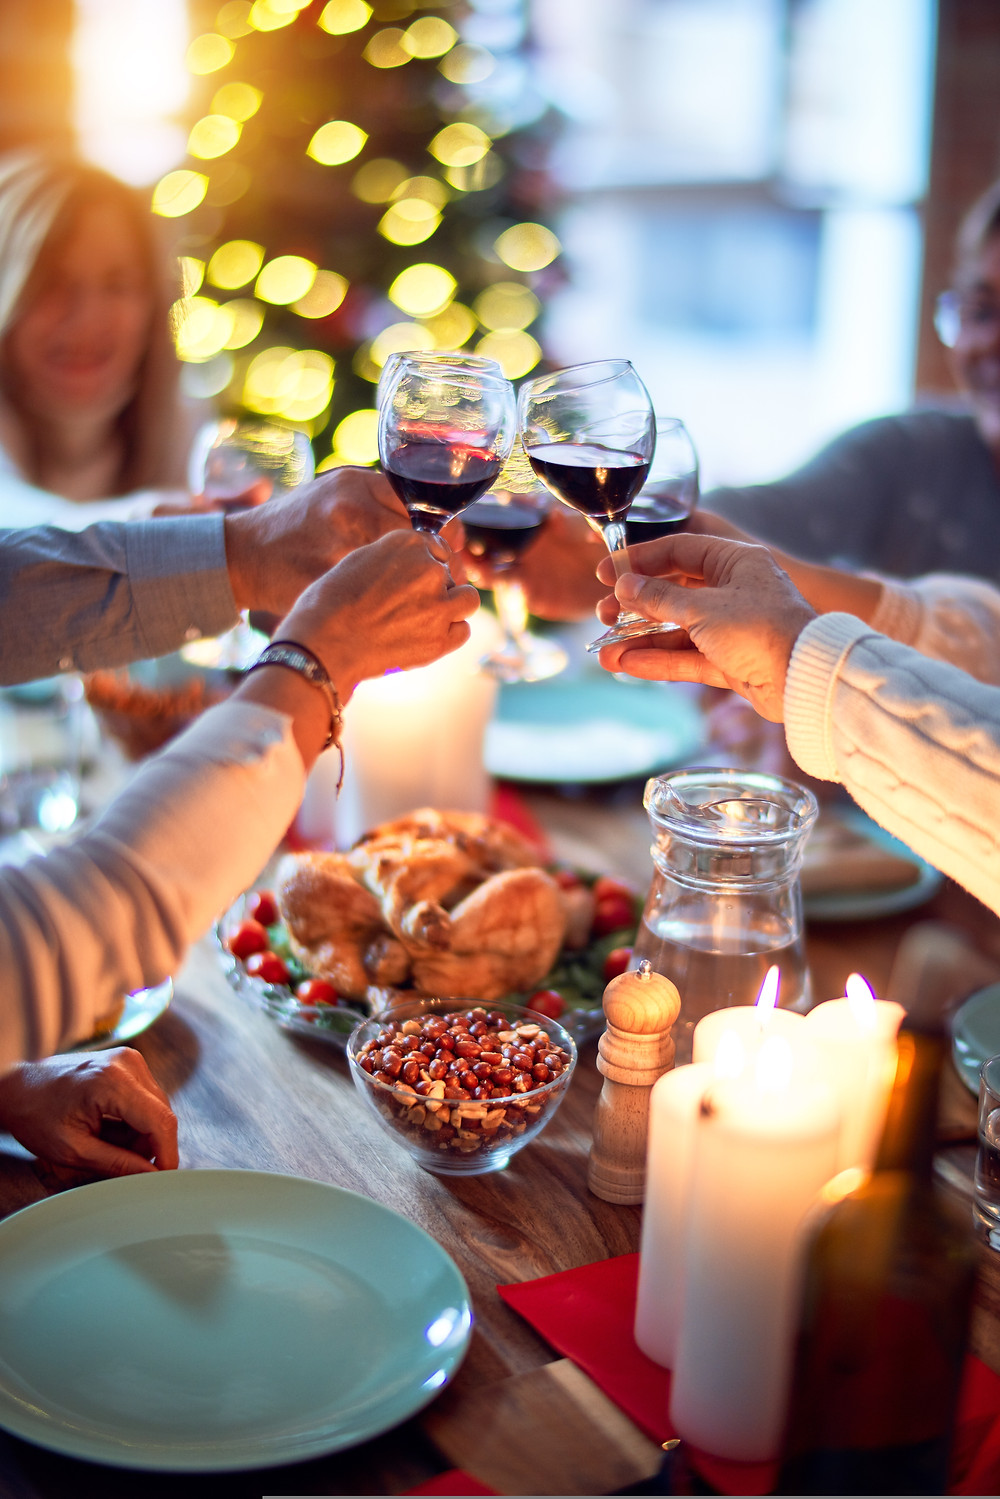 How to avoid overeating at Christmas dinner and the holidays